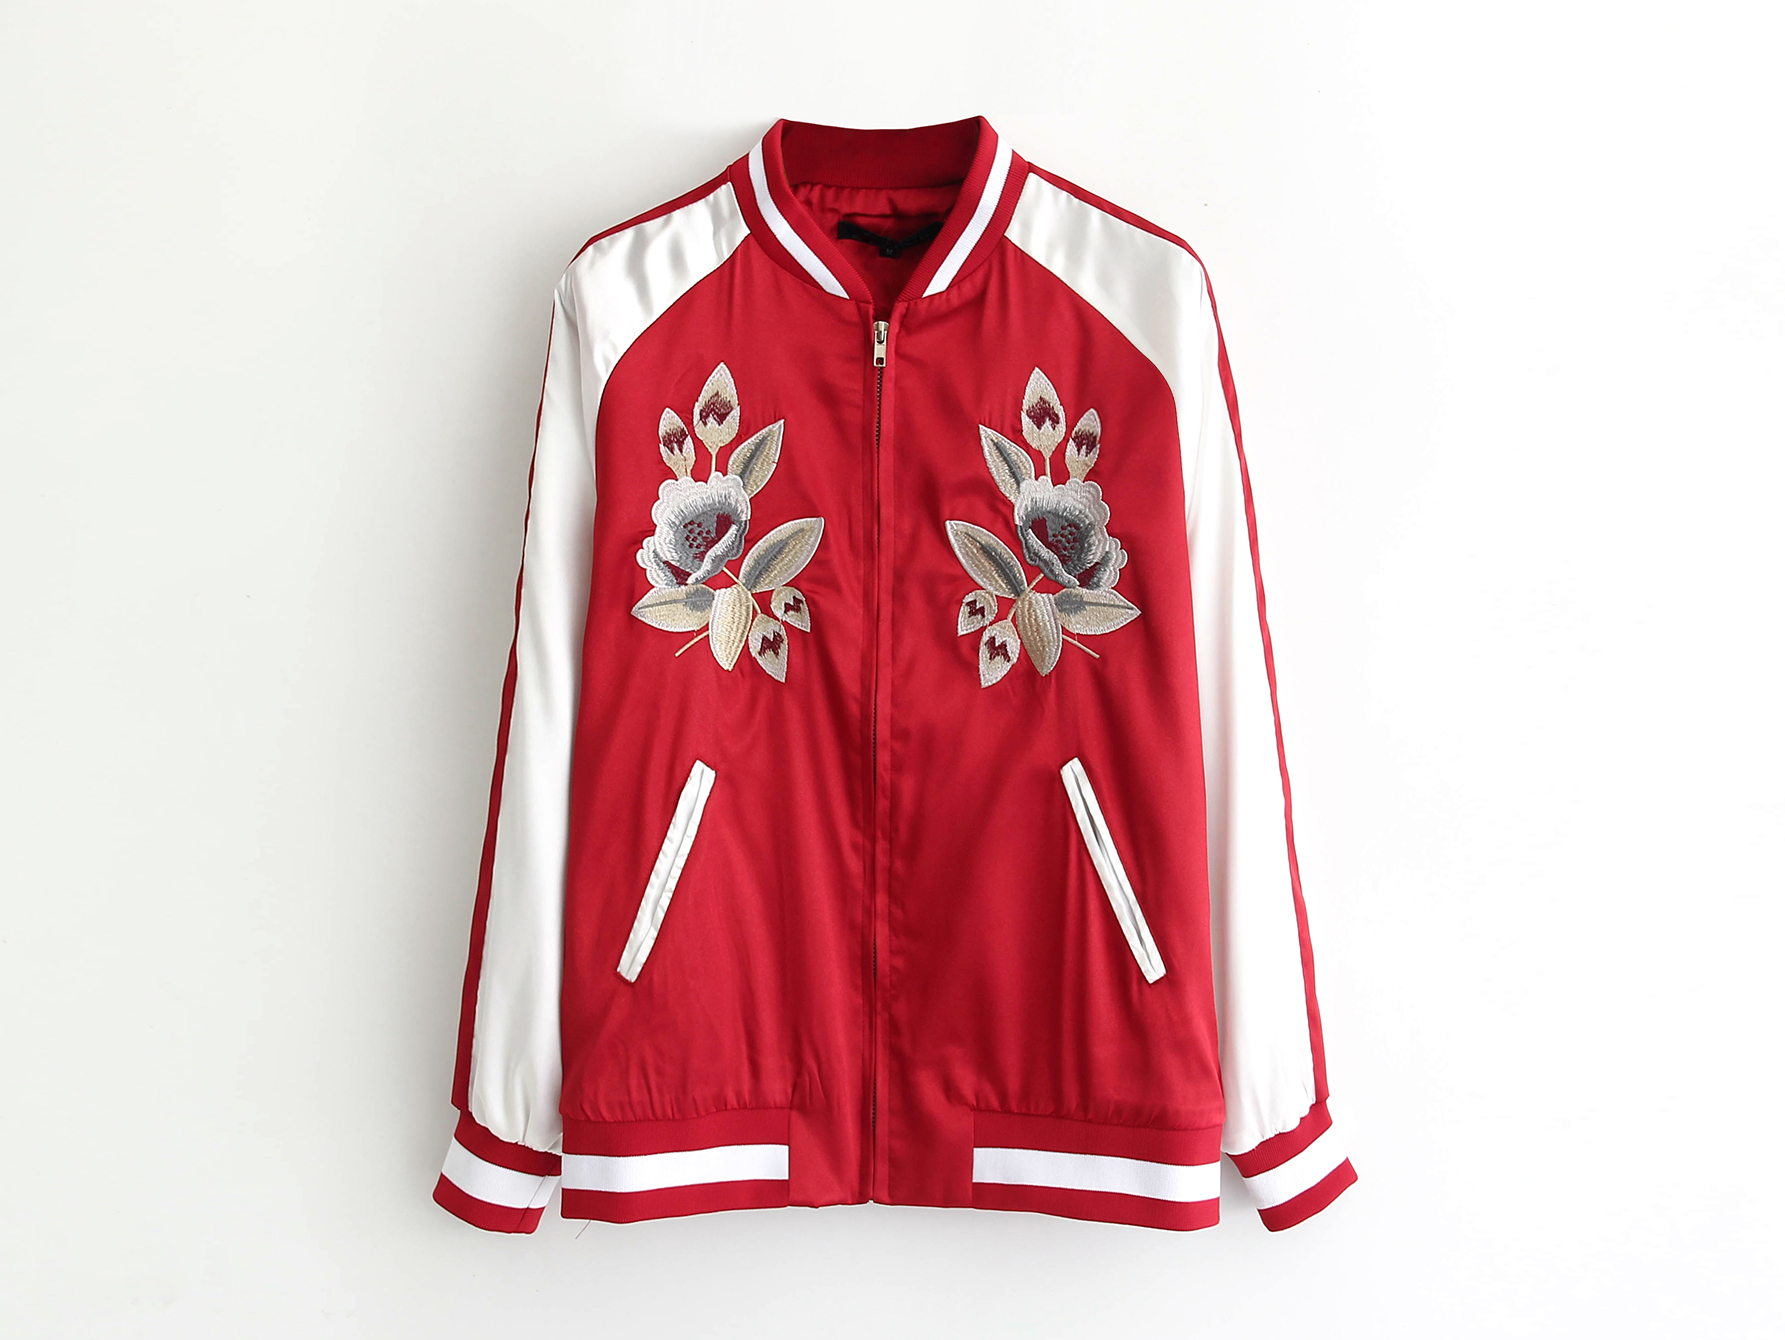 Anorak Women Red Shiny Jacket Long Sleeve O-Neck Patchwork Zipper Floral Embroidery Jacket A8746